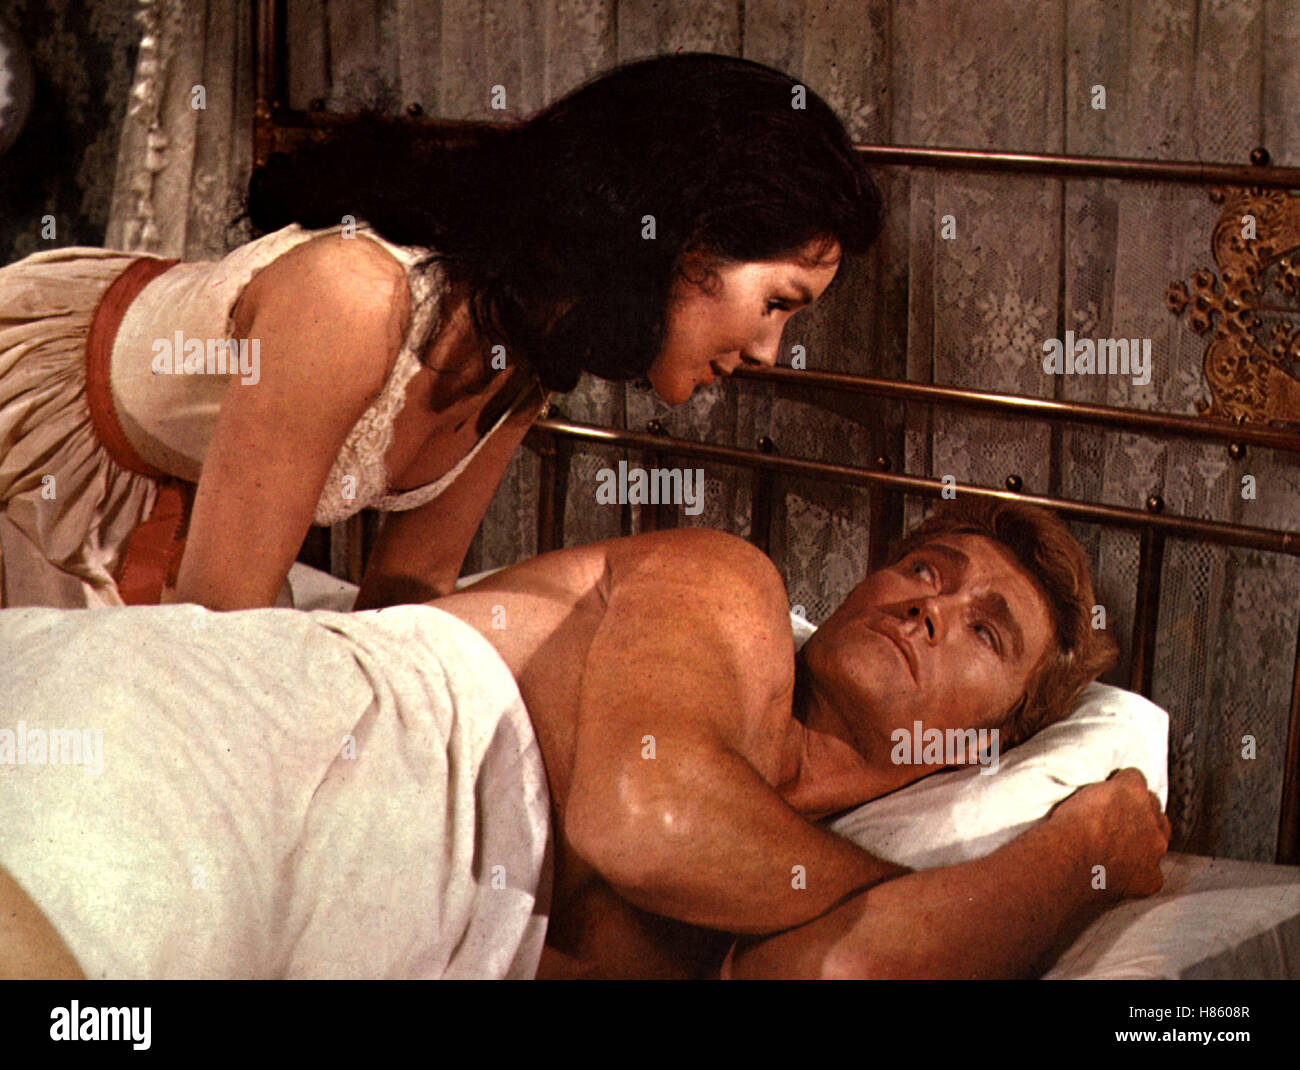 with chuck connors stock photos with chuck connors stock images page 2 alamy. Black Bedroom Furniture Sets. Home Design Ideas